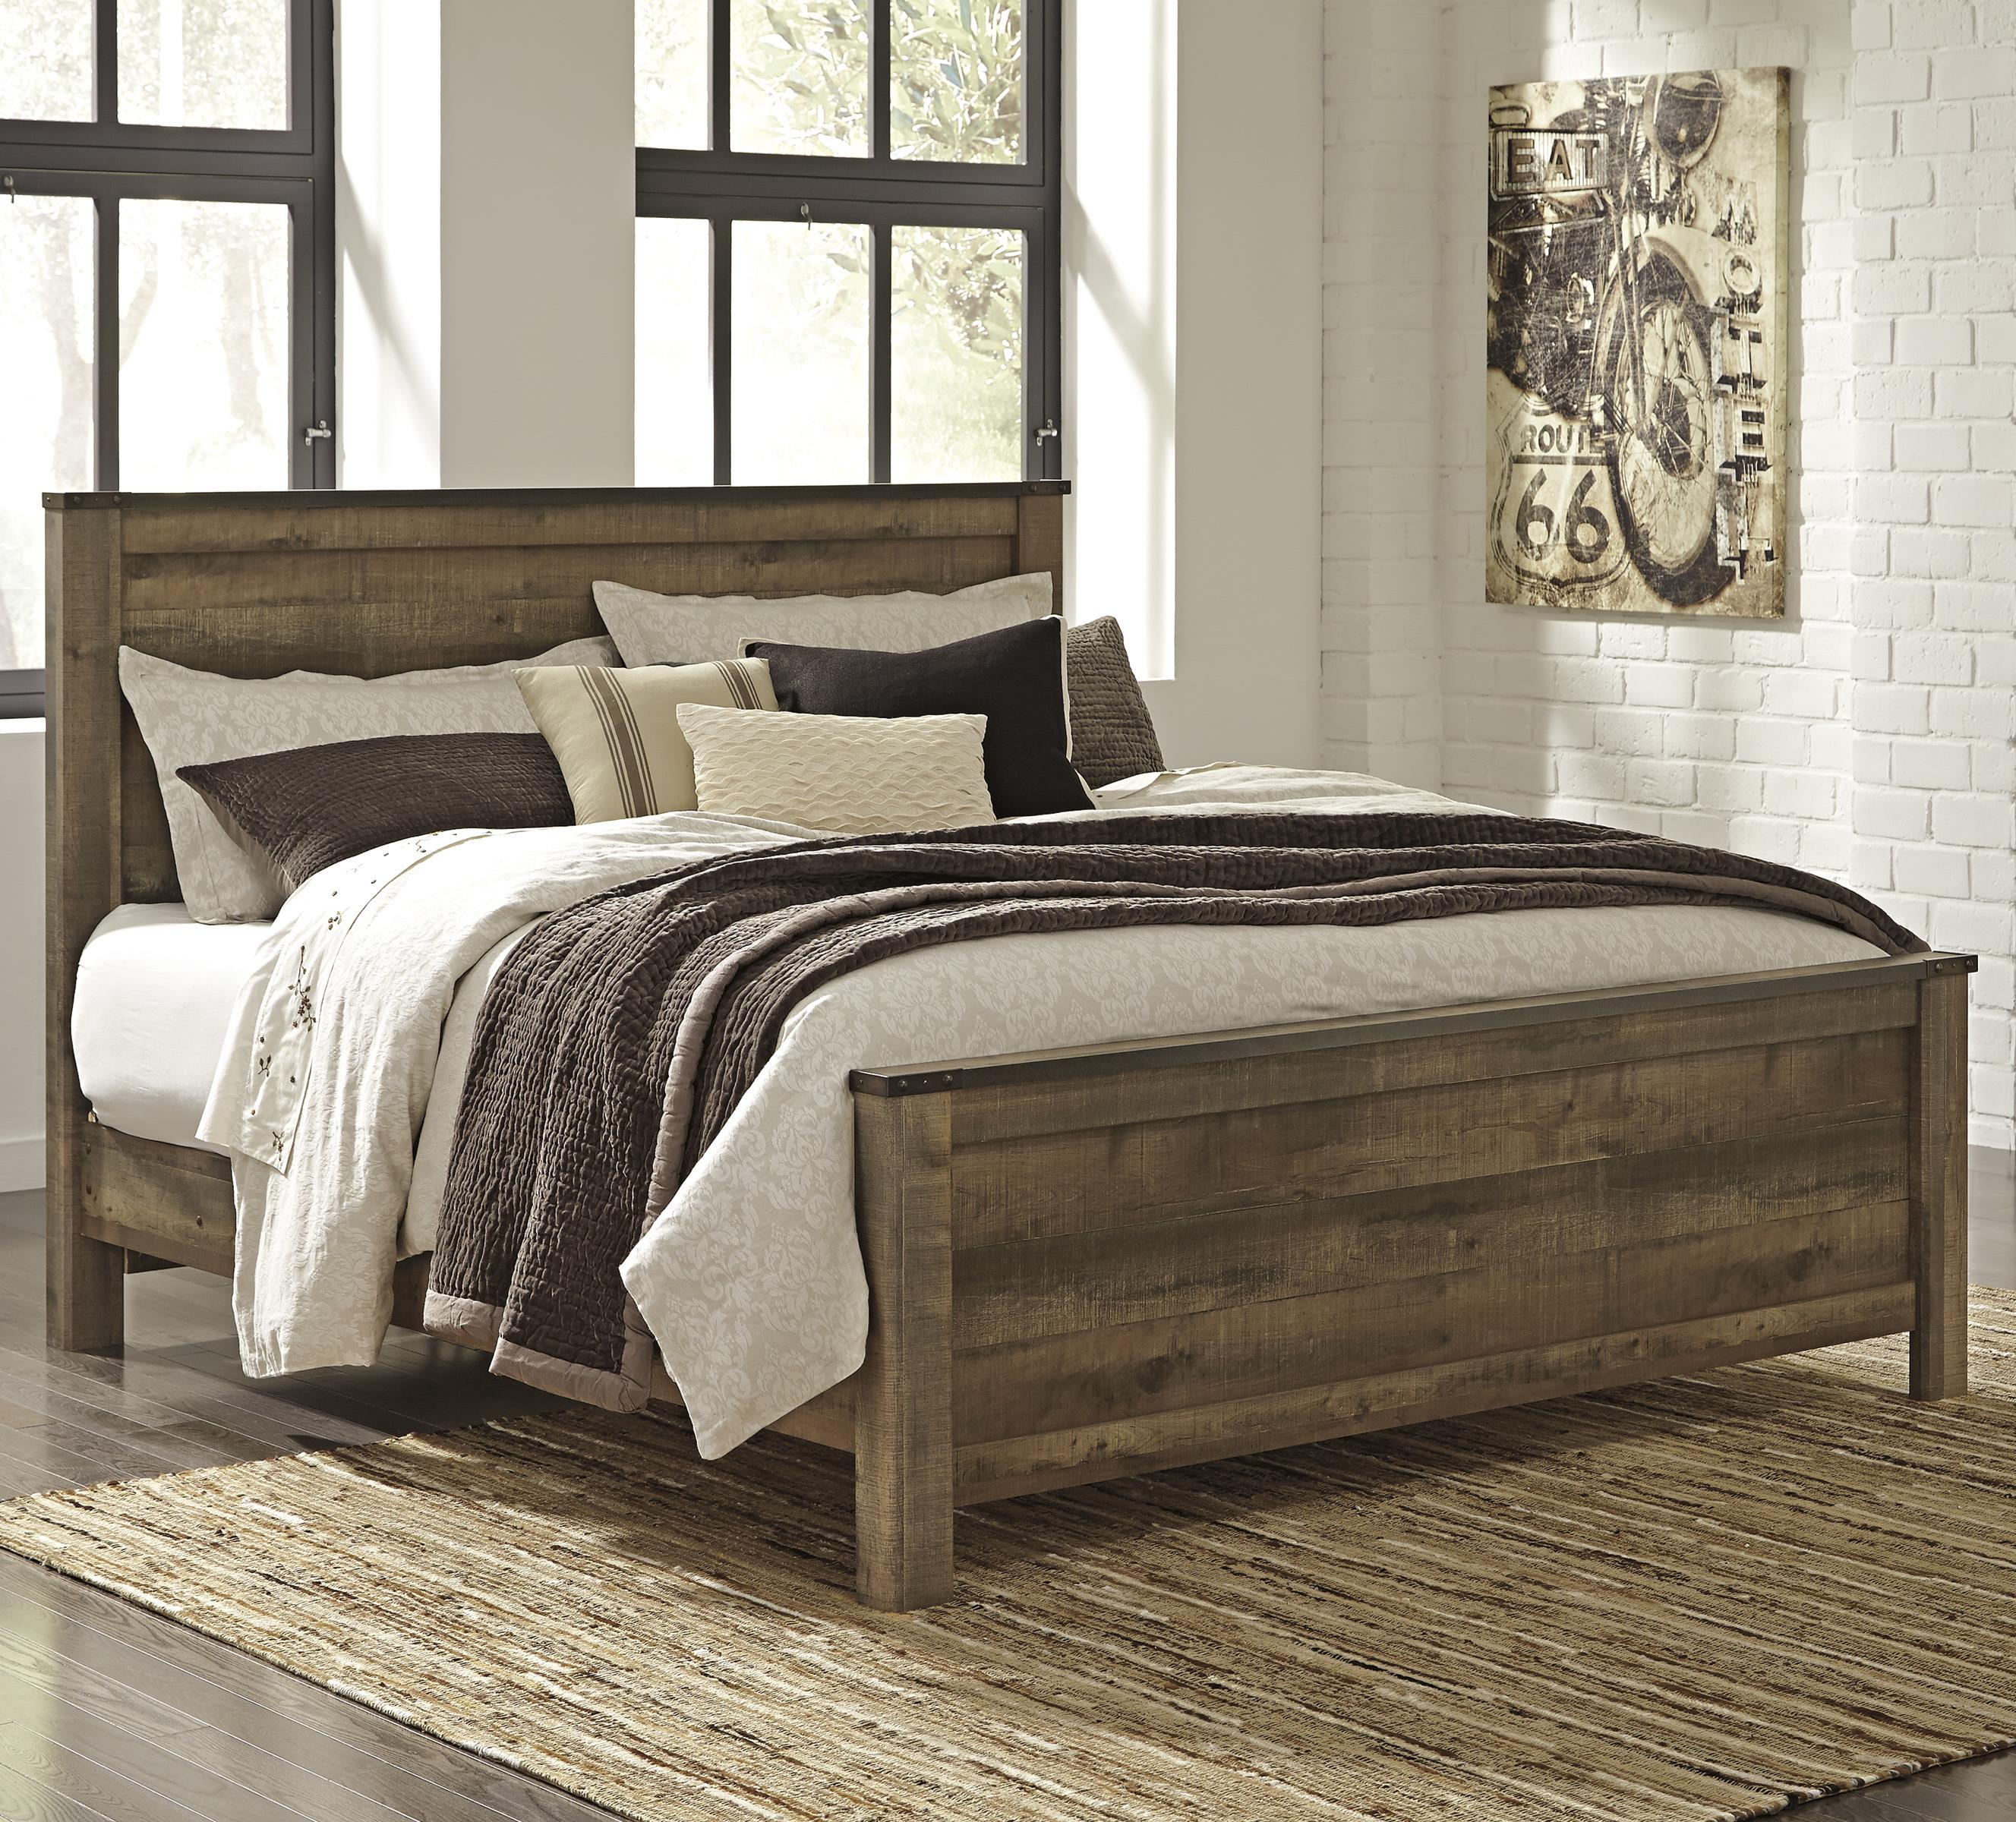 Signature Design By Ashley Trinell Rustic Look King Panel Bed Becker Furniture World Panel Beds